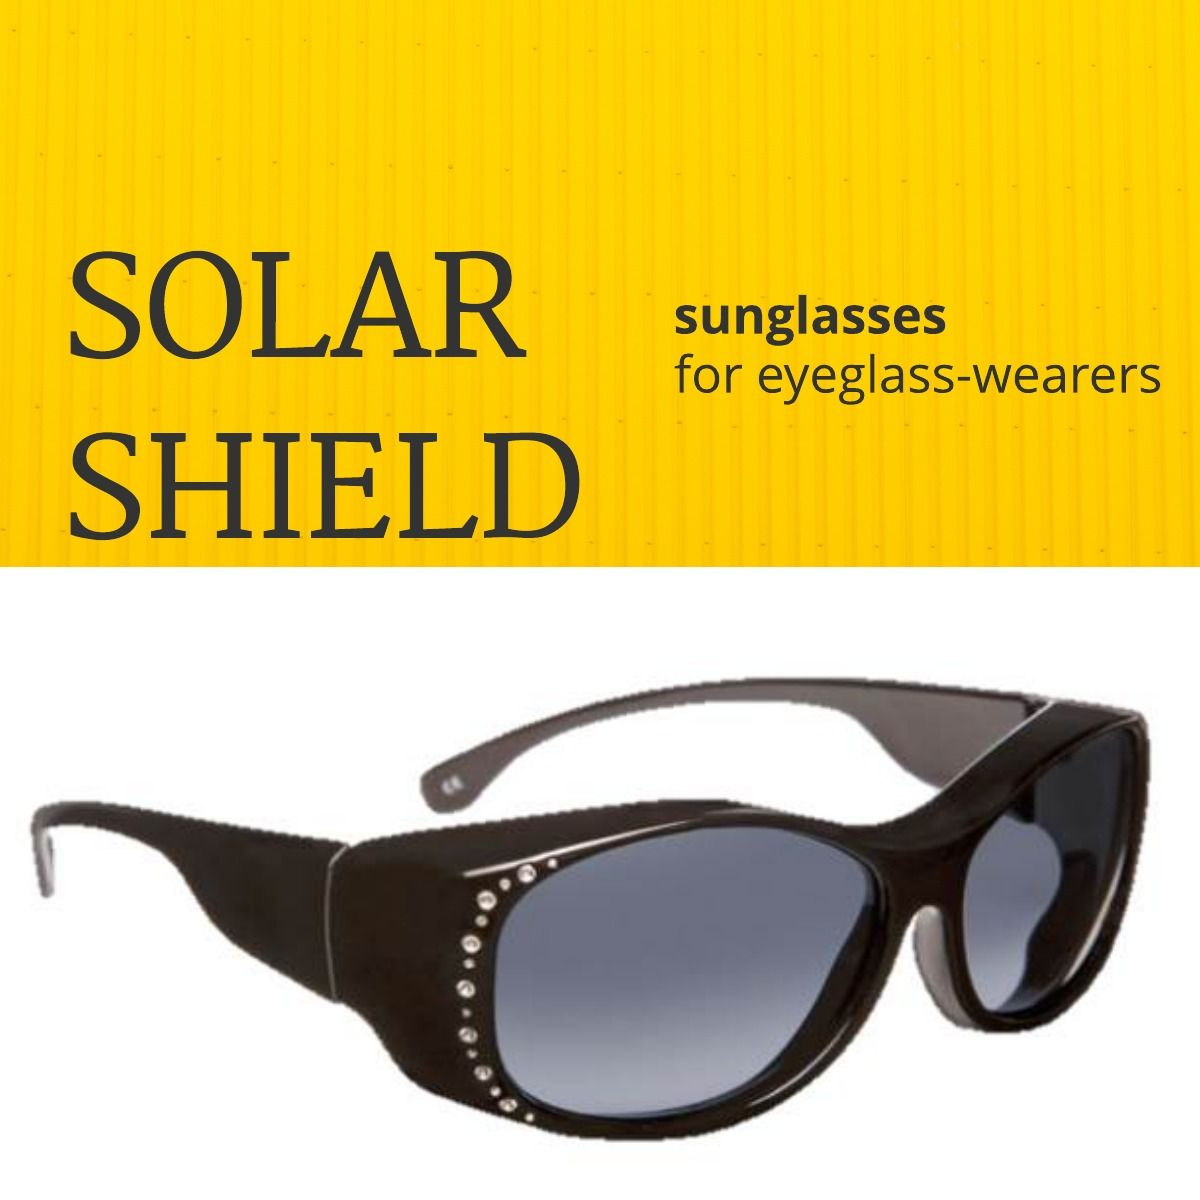 c51b131de5a Solar Shield are the best sunglasses for eyeglass-wearers ...